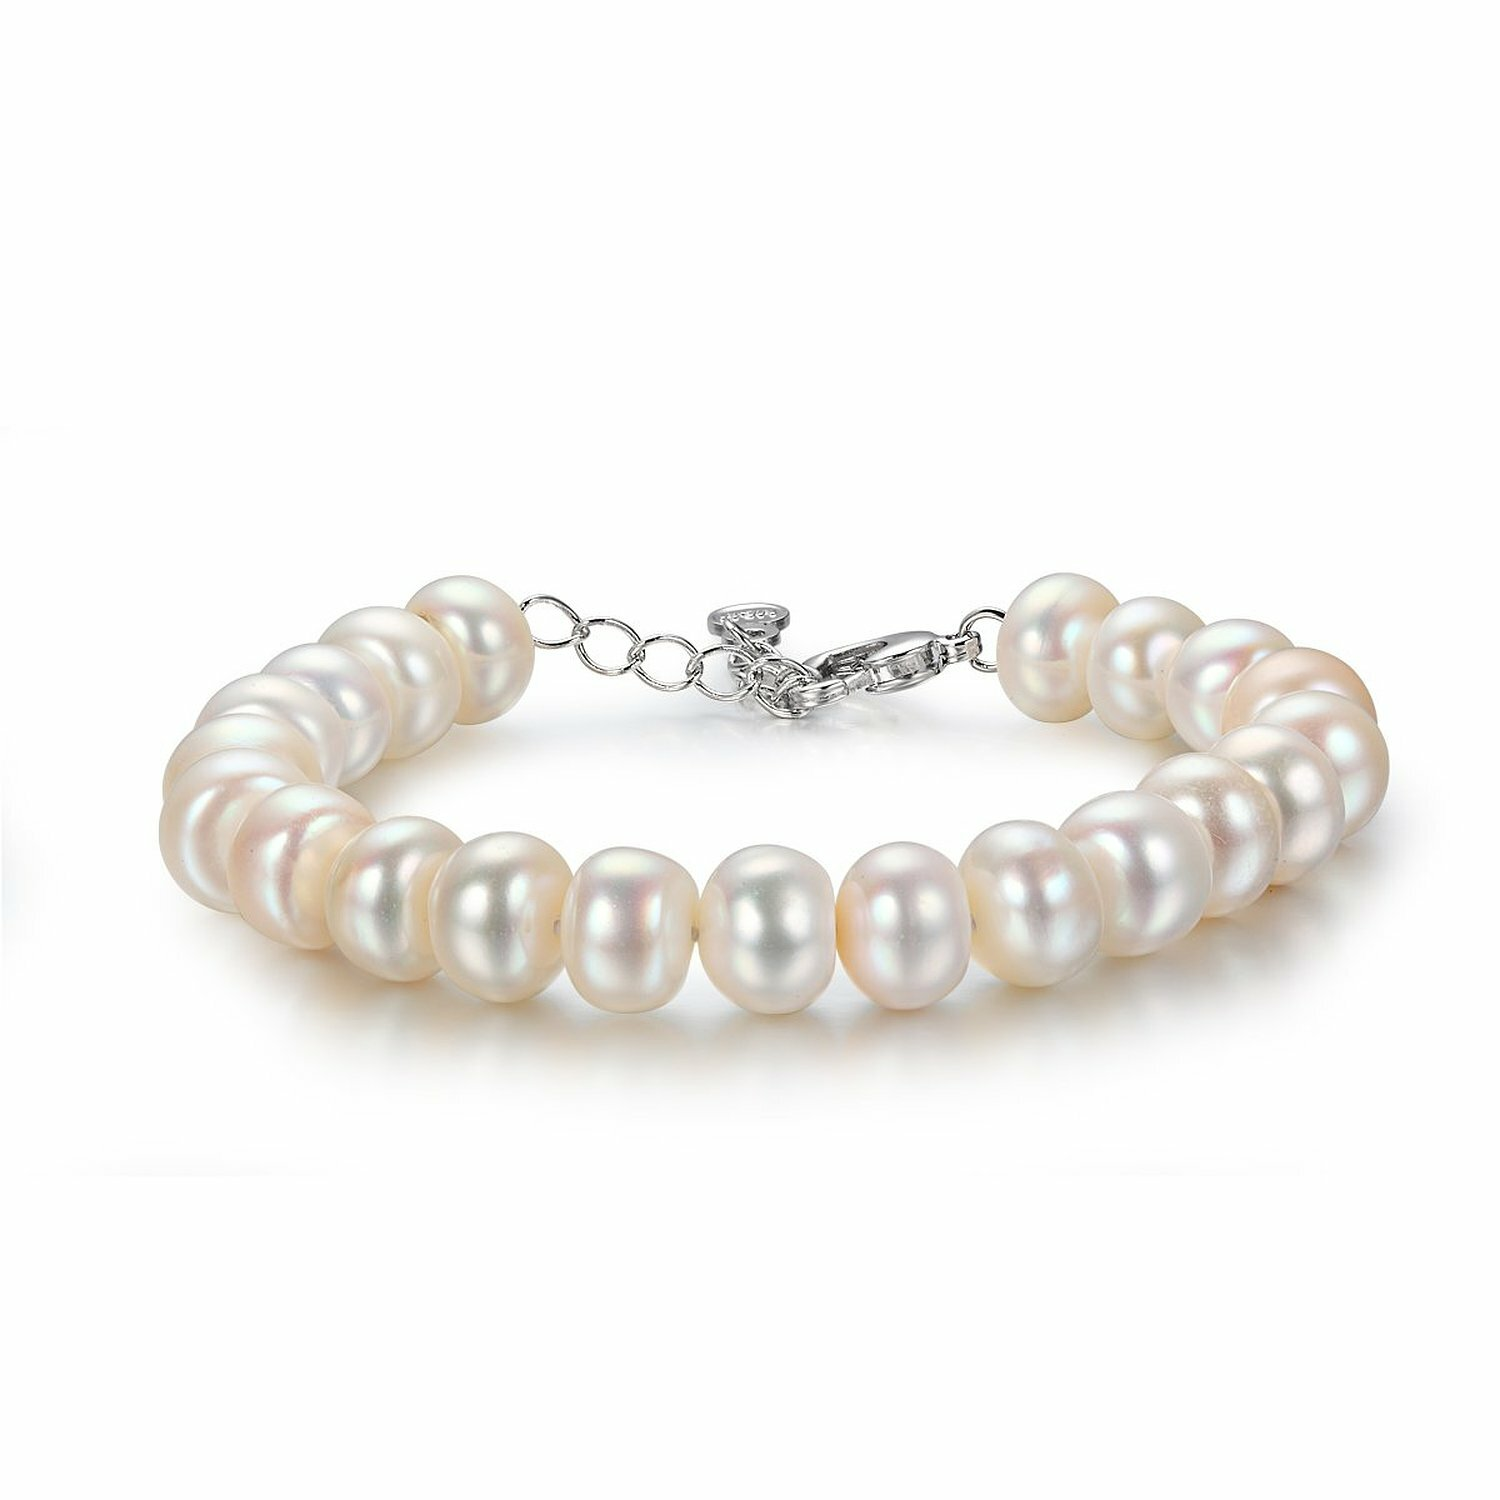 15 Pearl Bracelet Design Samples You Will Love | Mostbeautifulthings